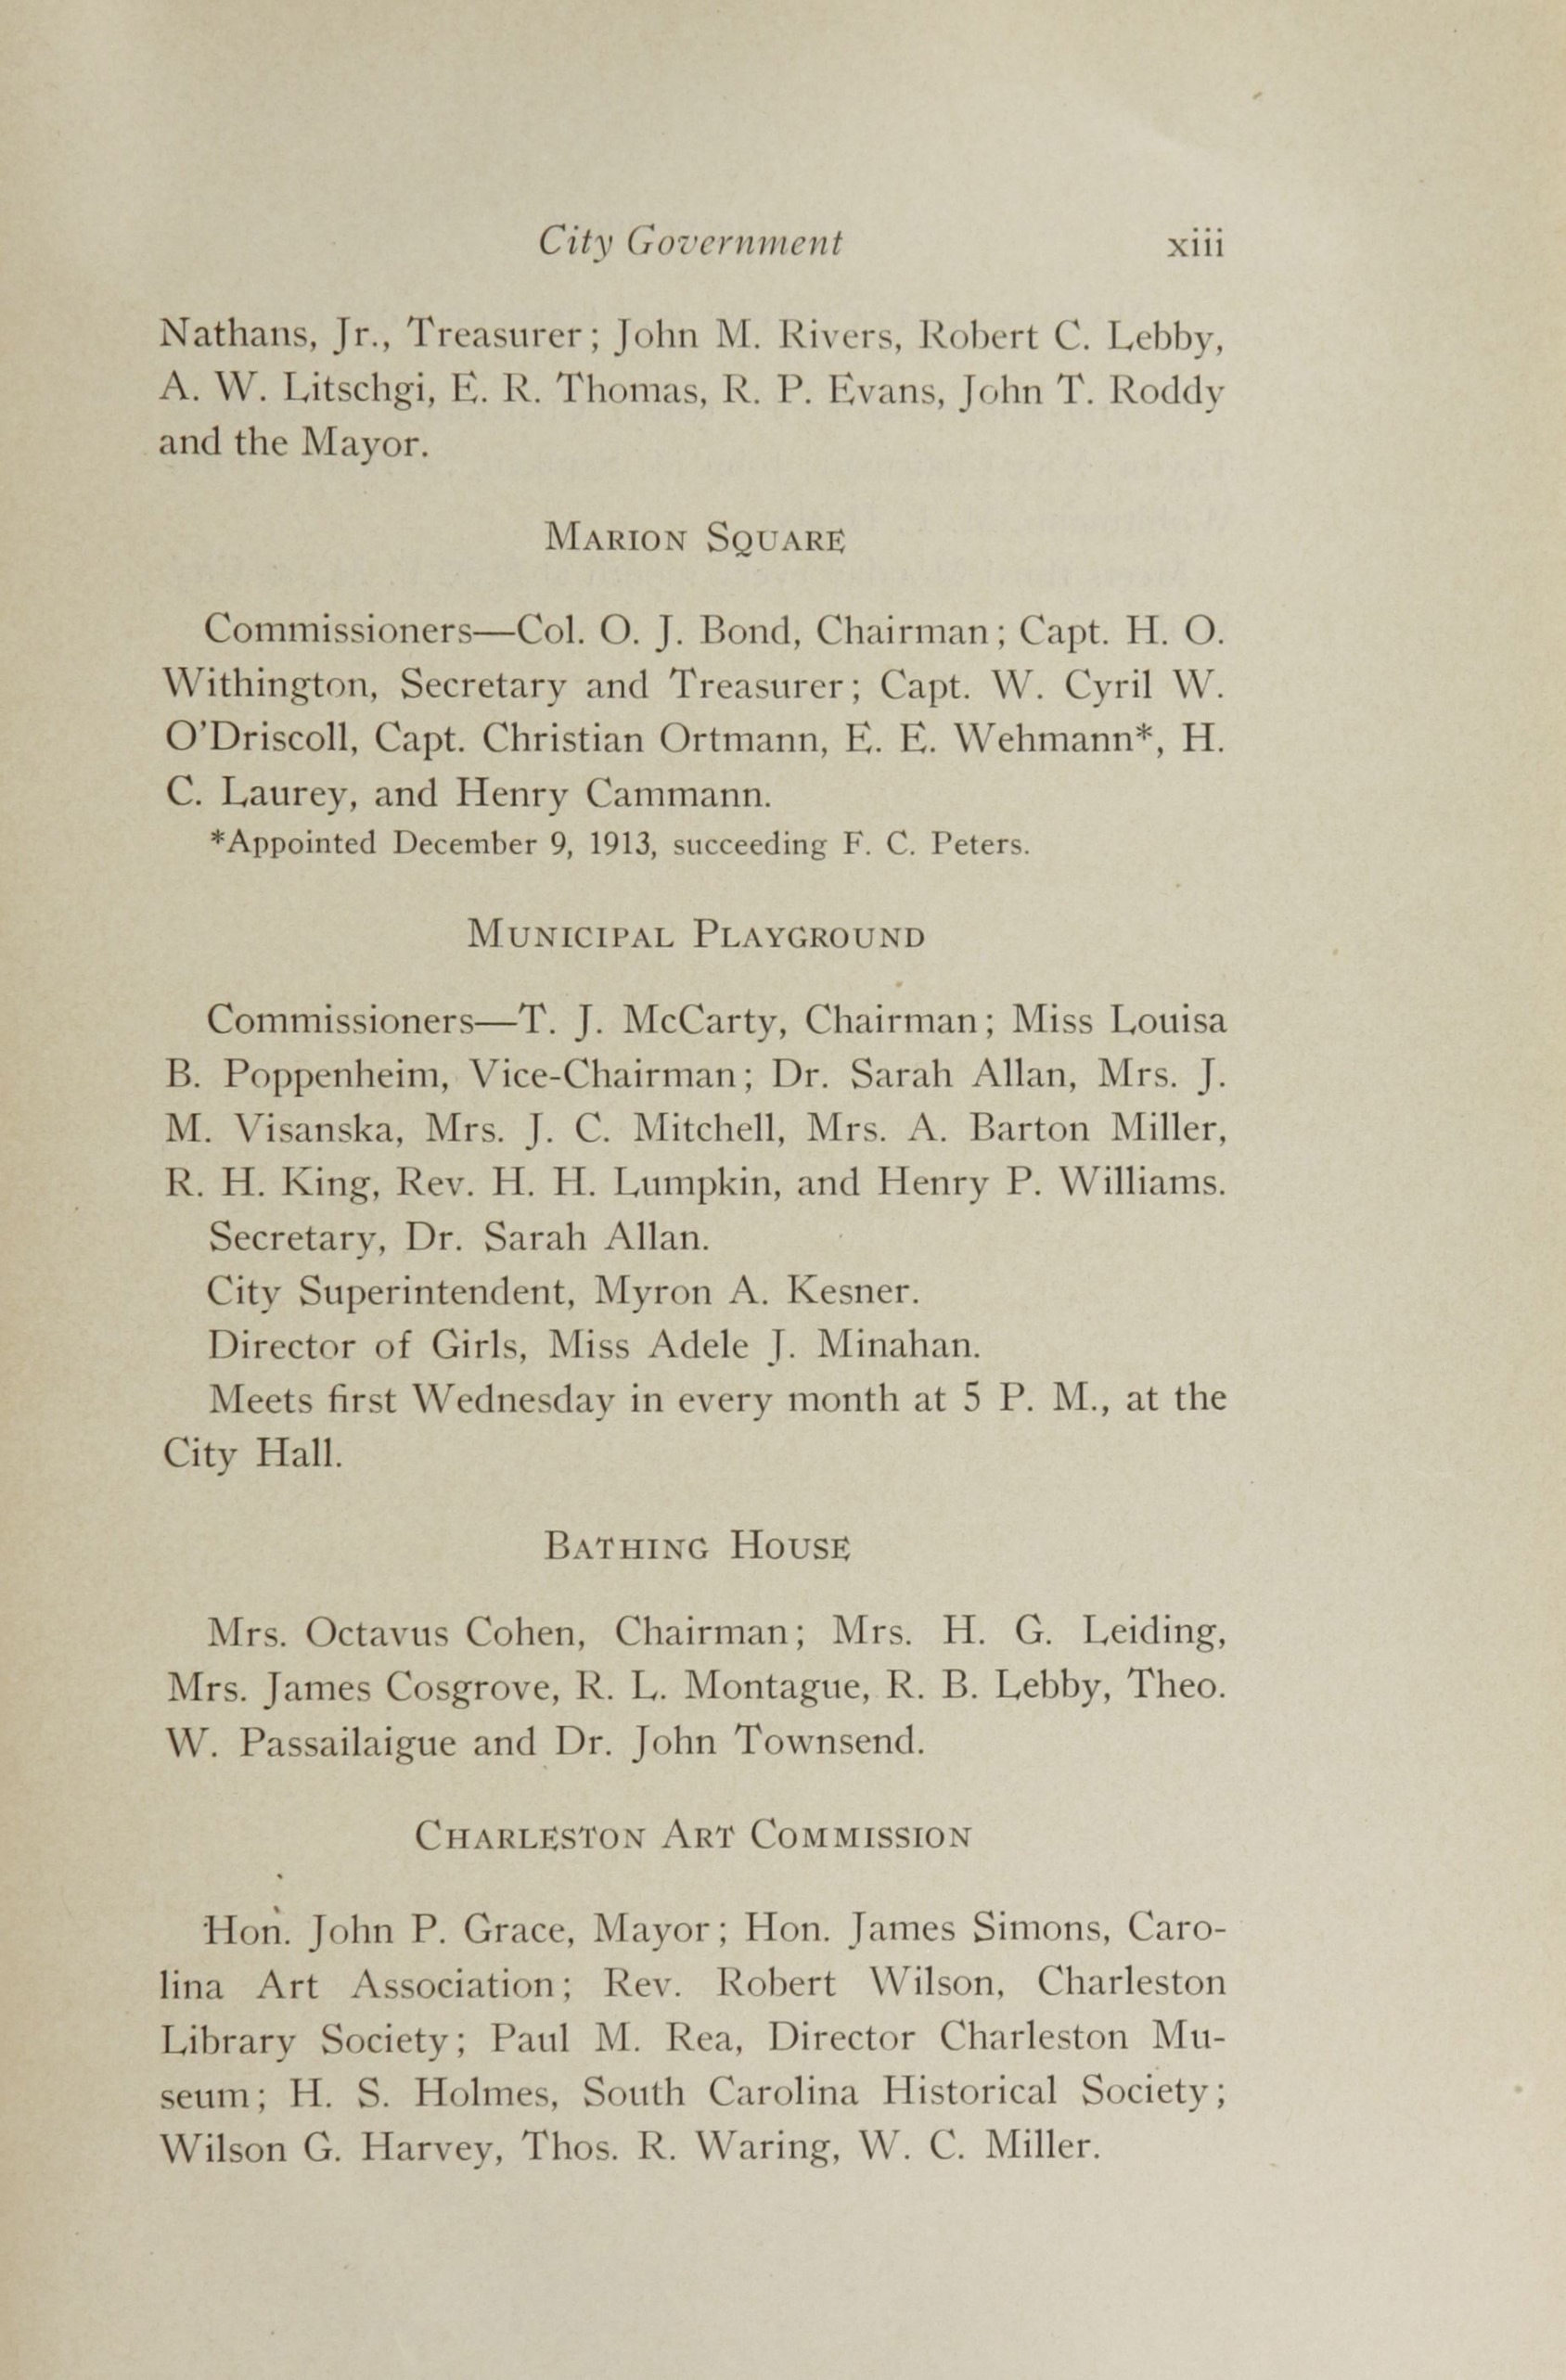 Charleston Yearbook, 1913, page xiii